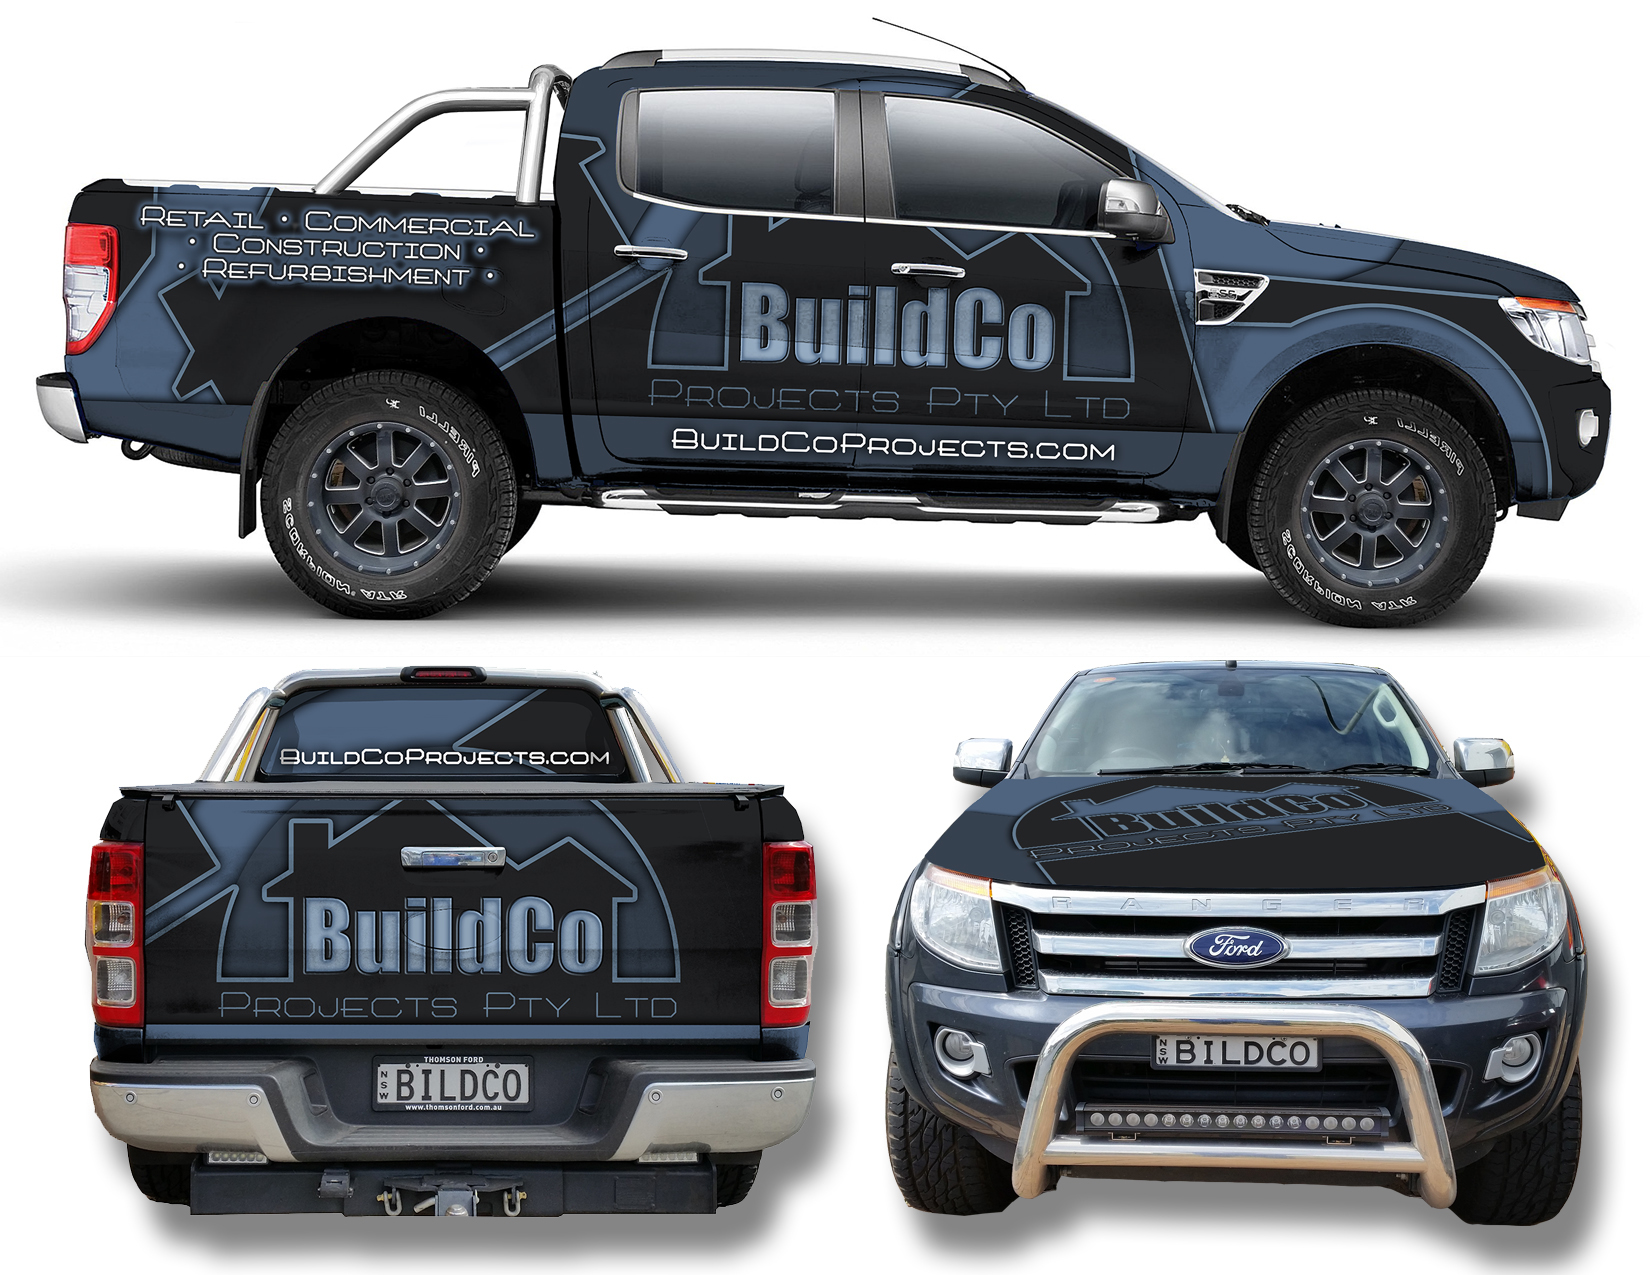 Bold Car Wrap For Construction Company Car Wrap Construction